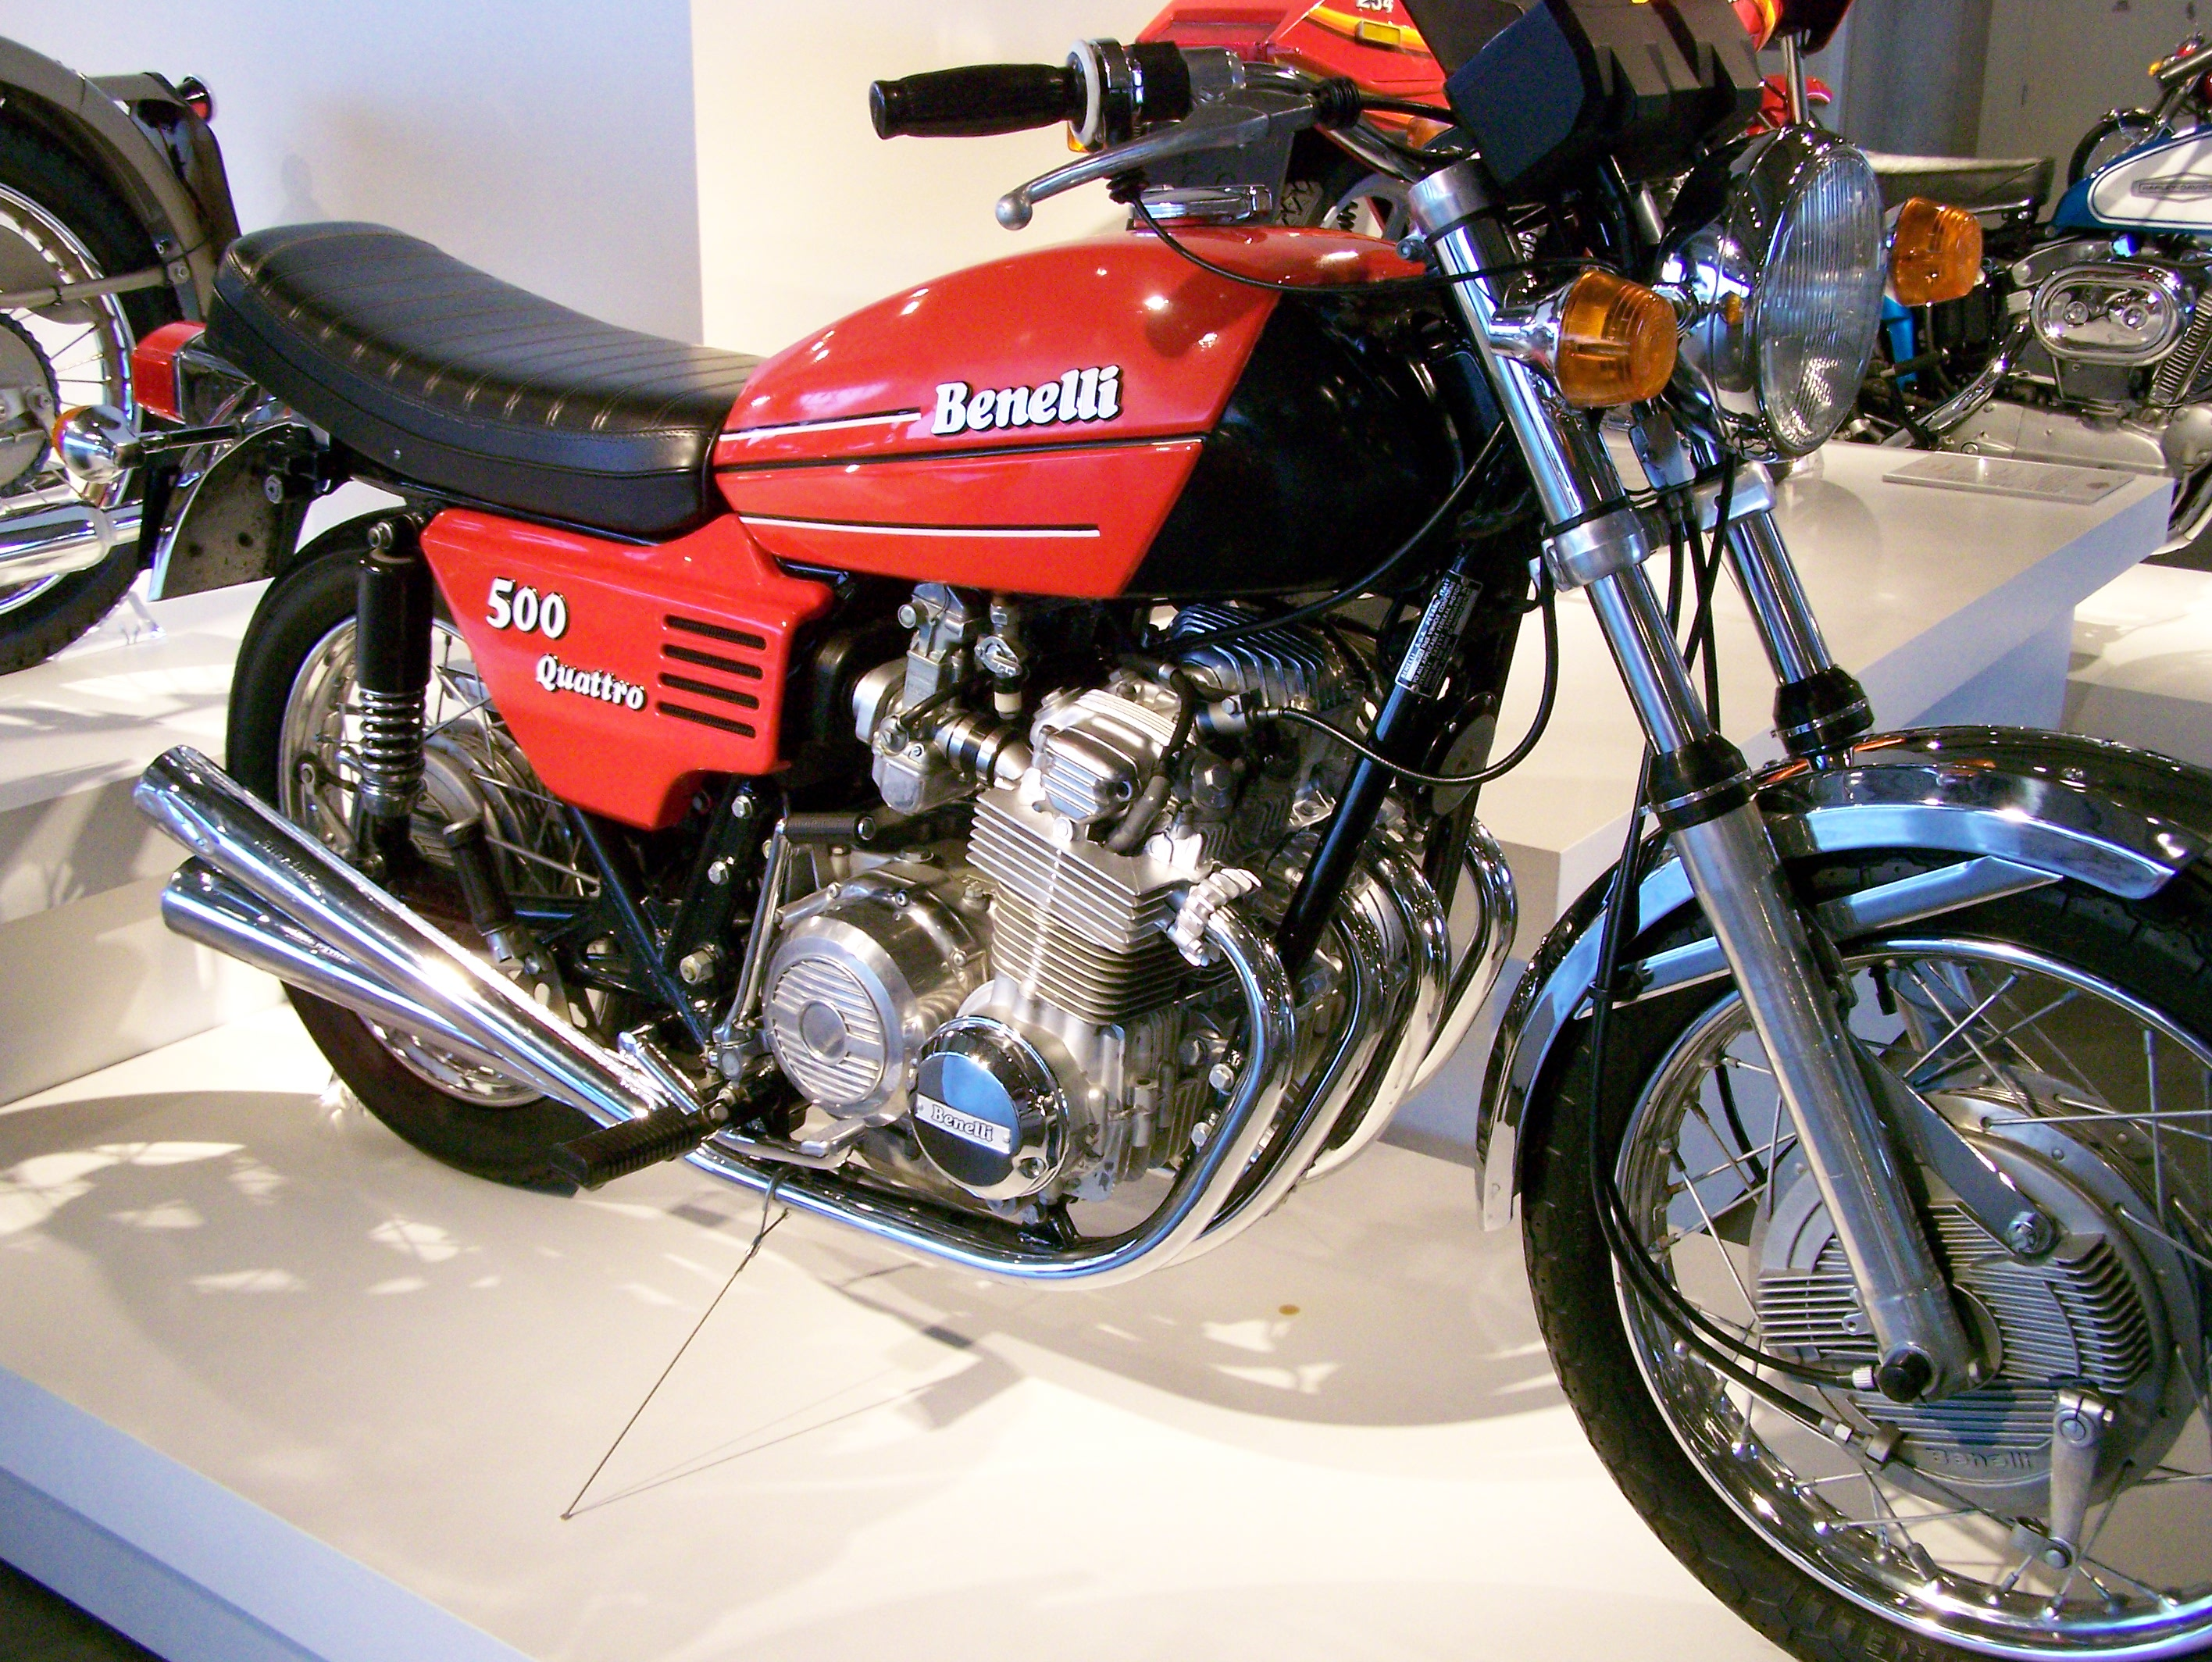 Benelli 500 Ouattro 1974 images #76082